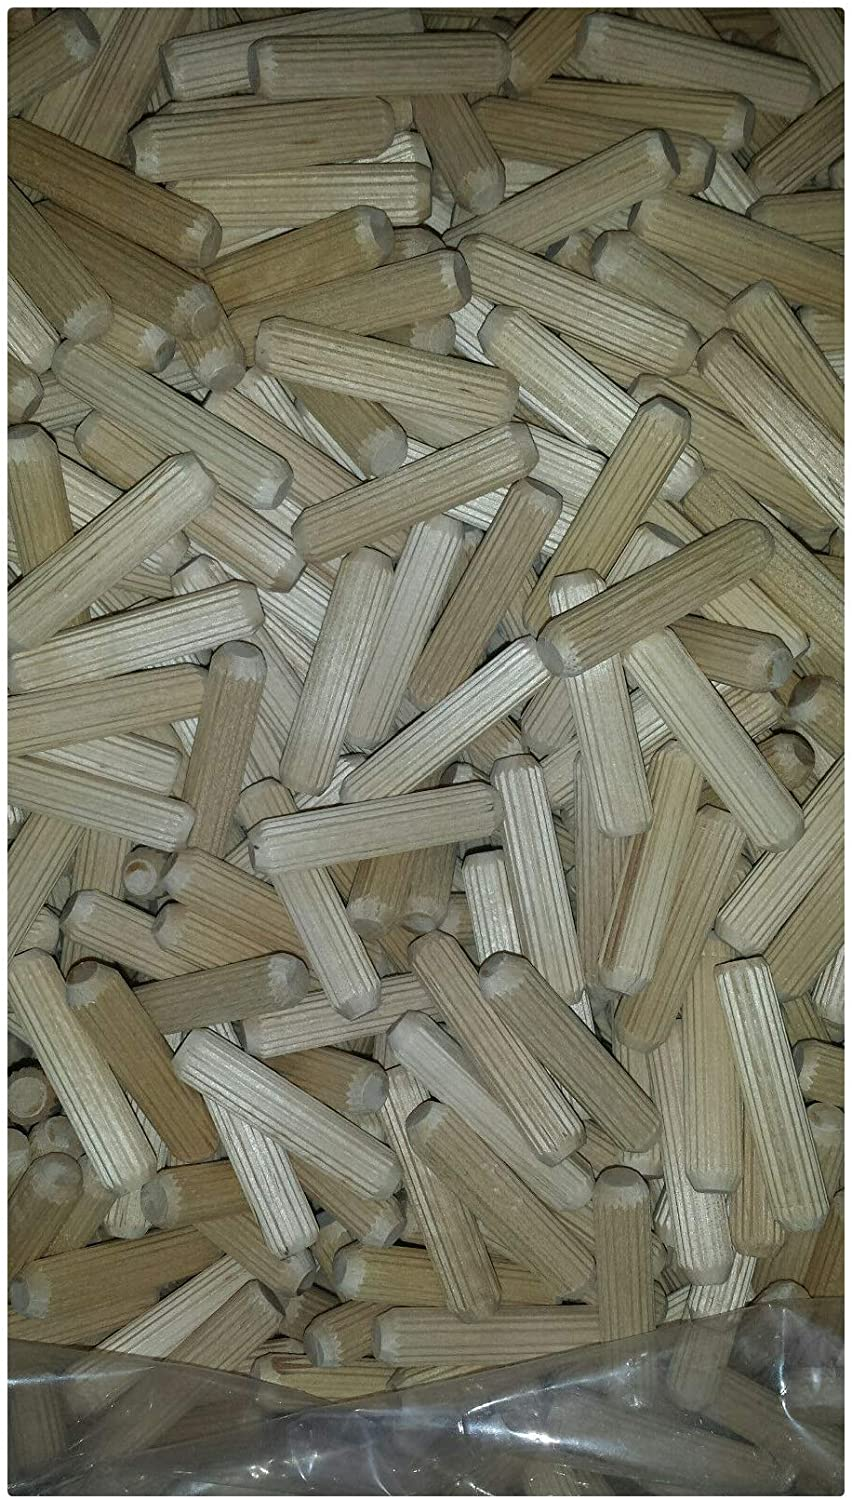 50 Pcs 7/16 x 2 Straight Fluted Wooden Dowel Pins Fluted Dowel Pins for Furniture